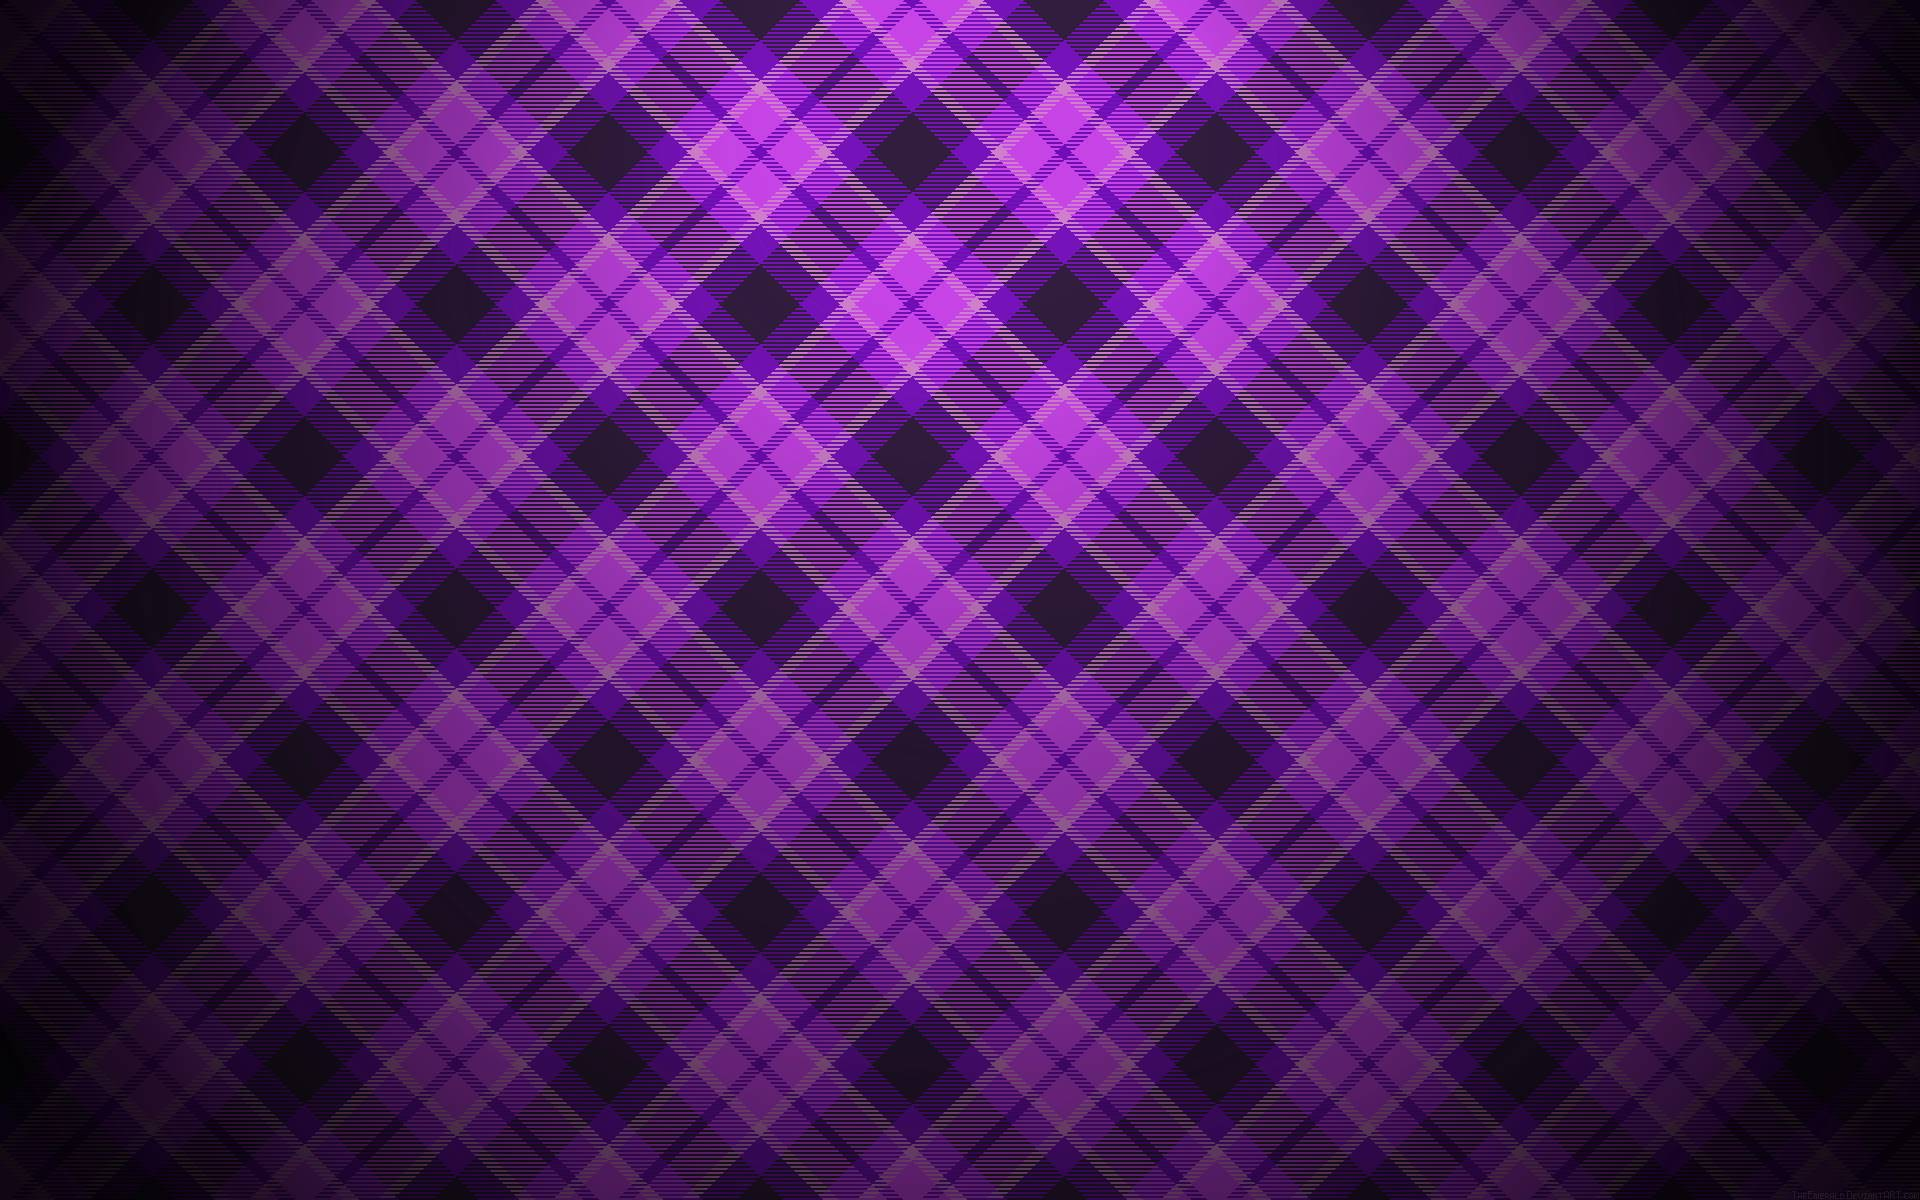 simple retro wallpaper 1920x1080 - photo #25